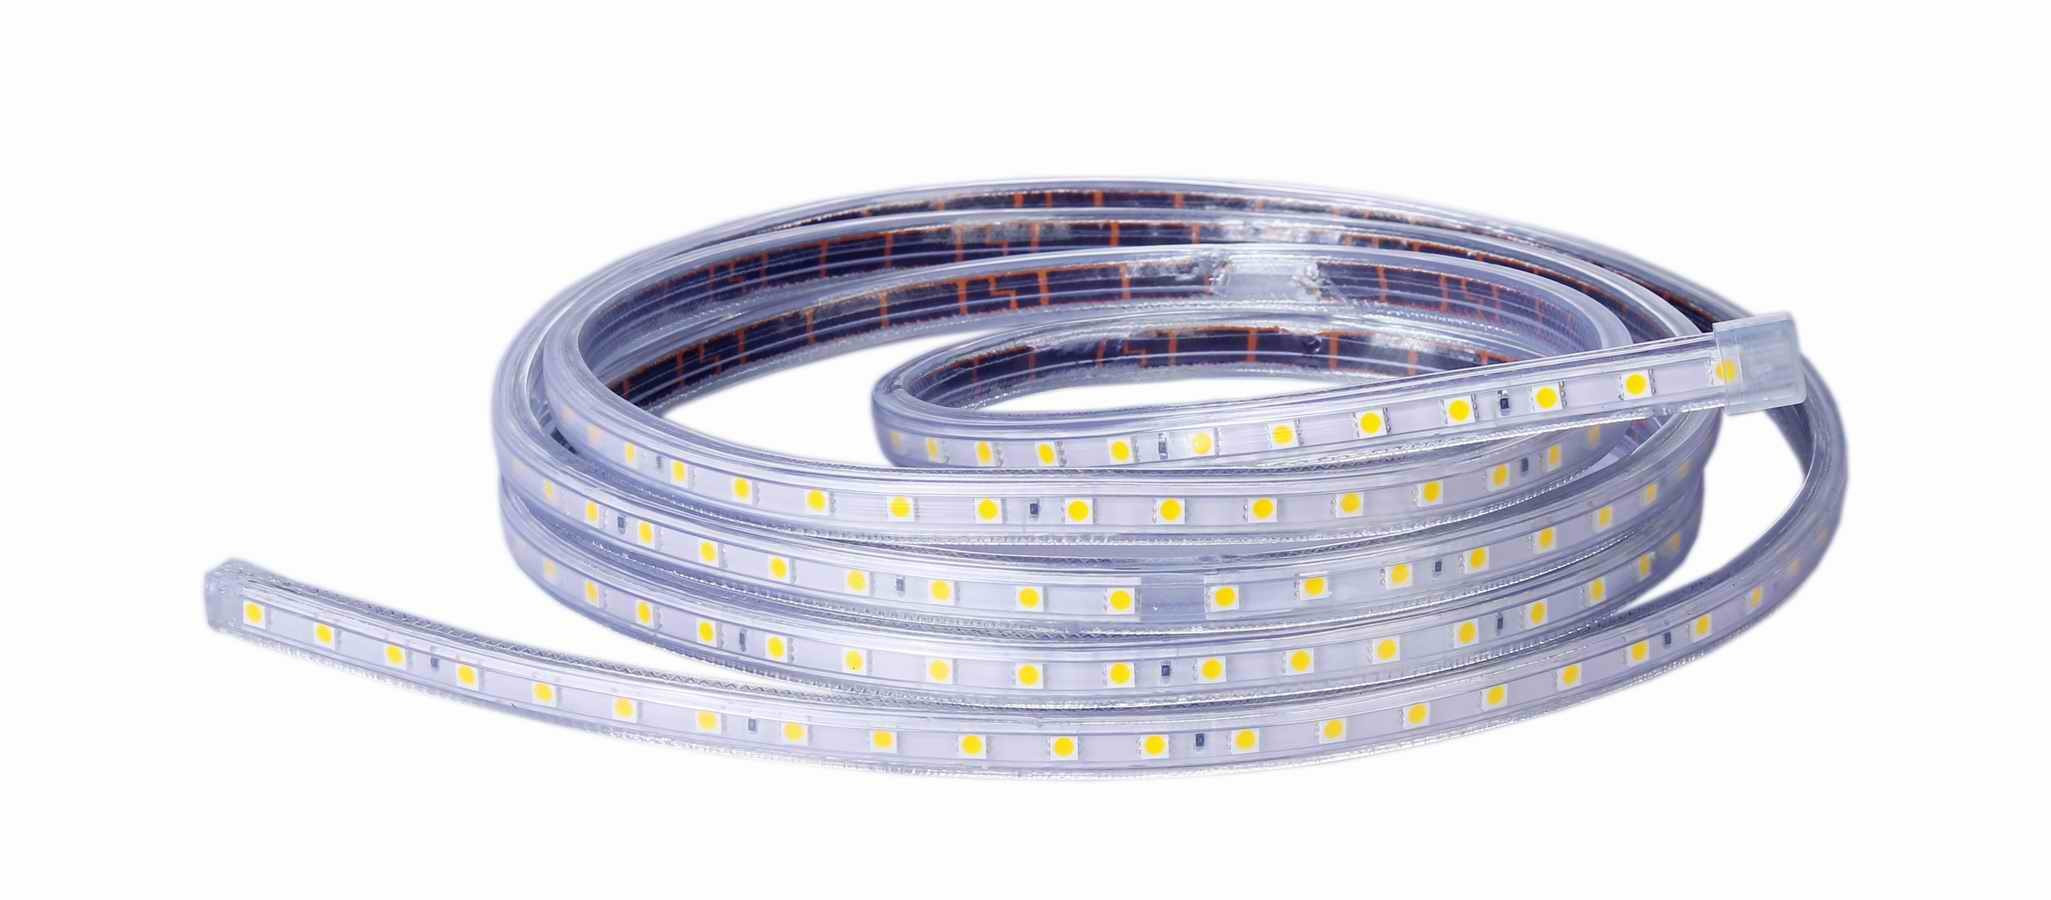 Comprar Tiras De Led Maravilloso Led Flexible Strip Light Smd5050 220v 30led Meter – Led Of Comprar Tiras De Led Encantador Prar Tiras De Leds Flexibles Blanco Cálido Mabar M